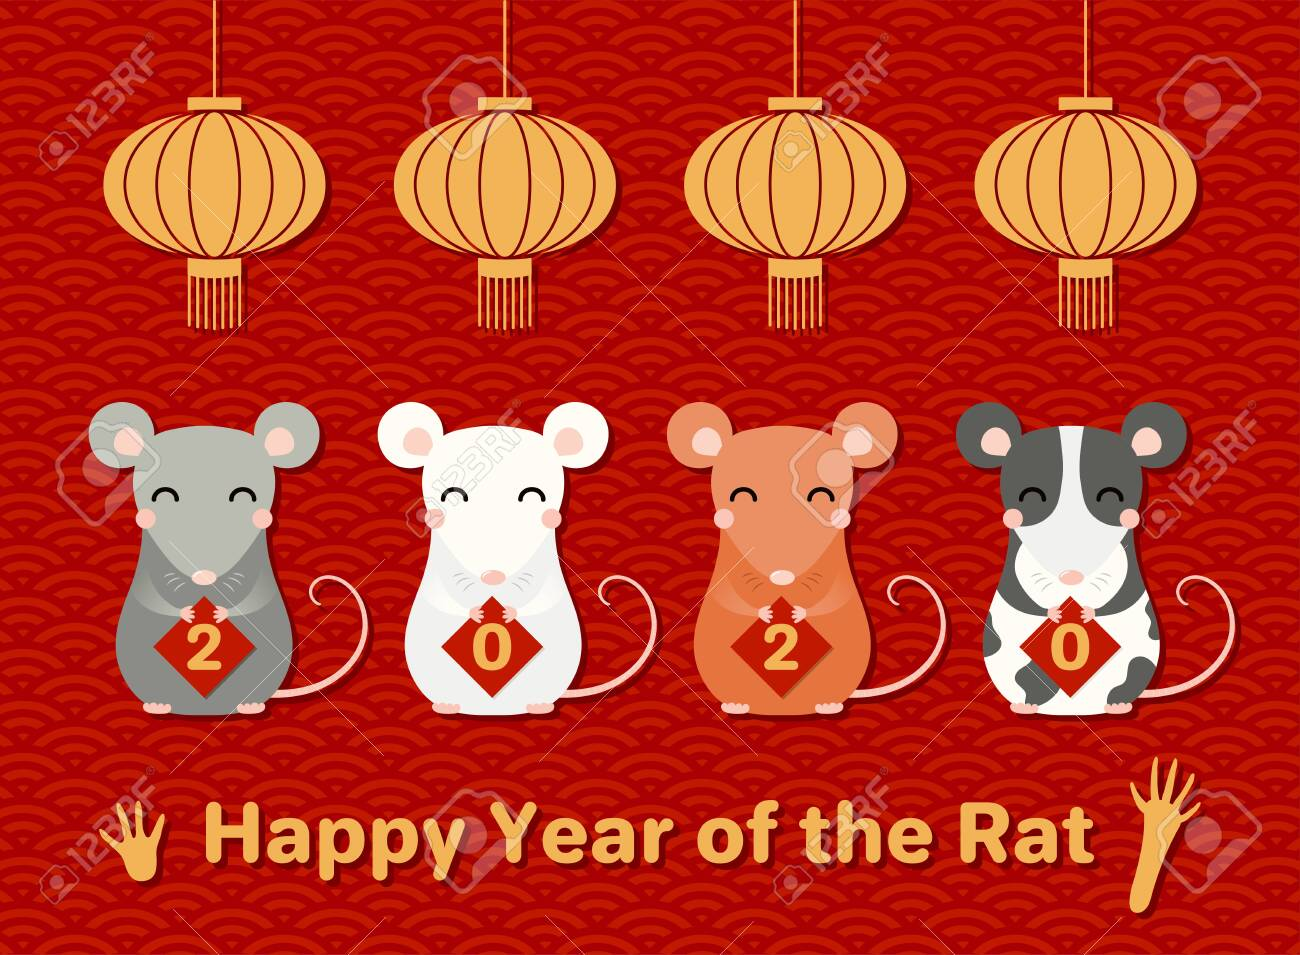 2020 Chinese New Year greeting card with cute rats holding cards with numbers, text, lanterns, on a waves pattern background. Vector illustration. Design concept holiday banner, decor element. - 124419827